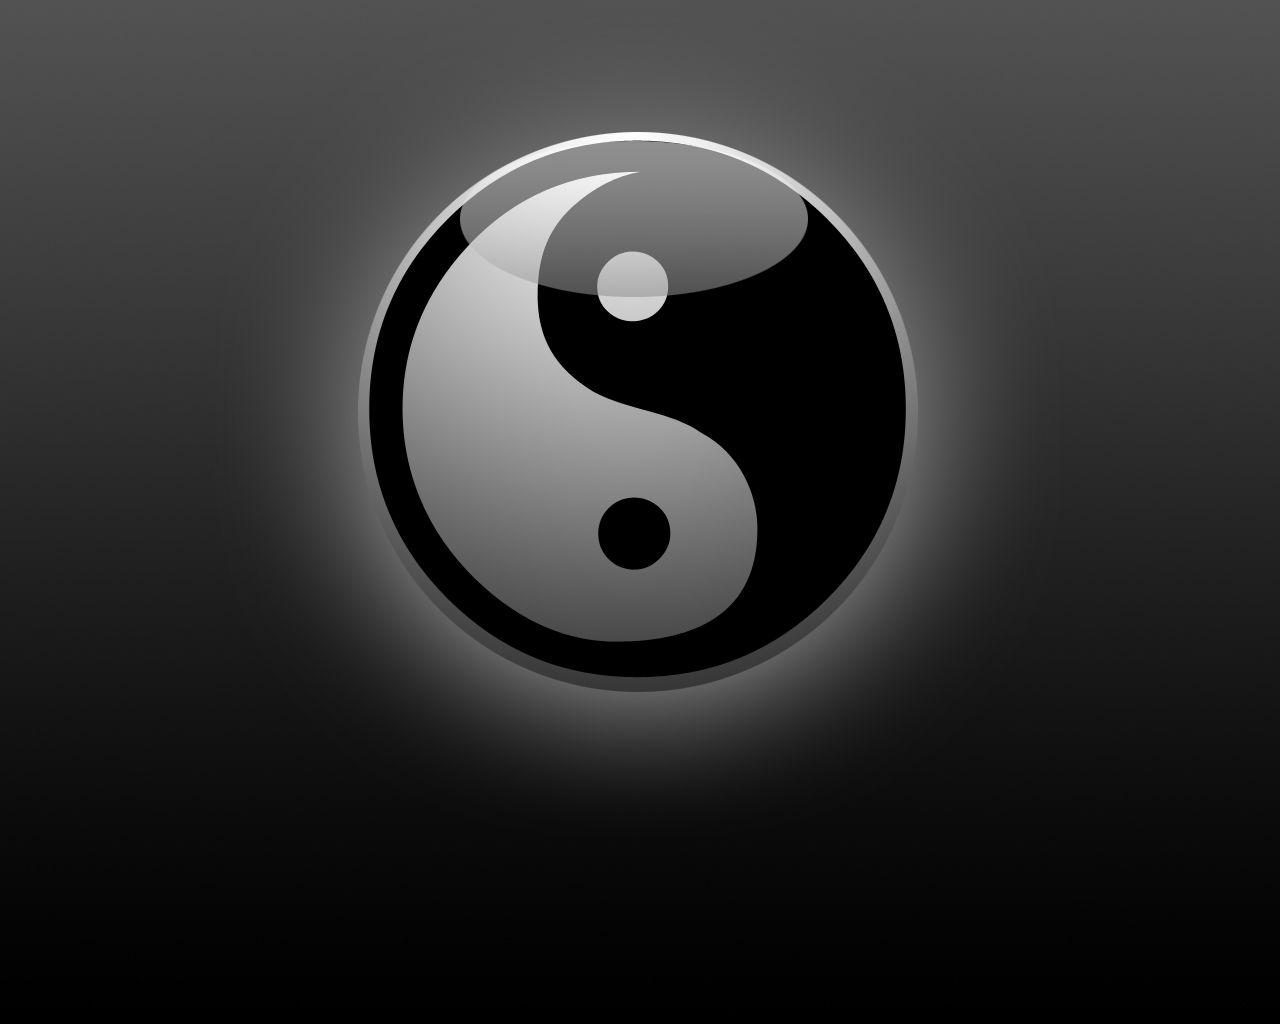 yin yang wallpapers – 1280×1024 High Definition Wallpapers